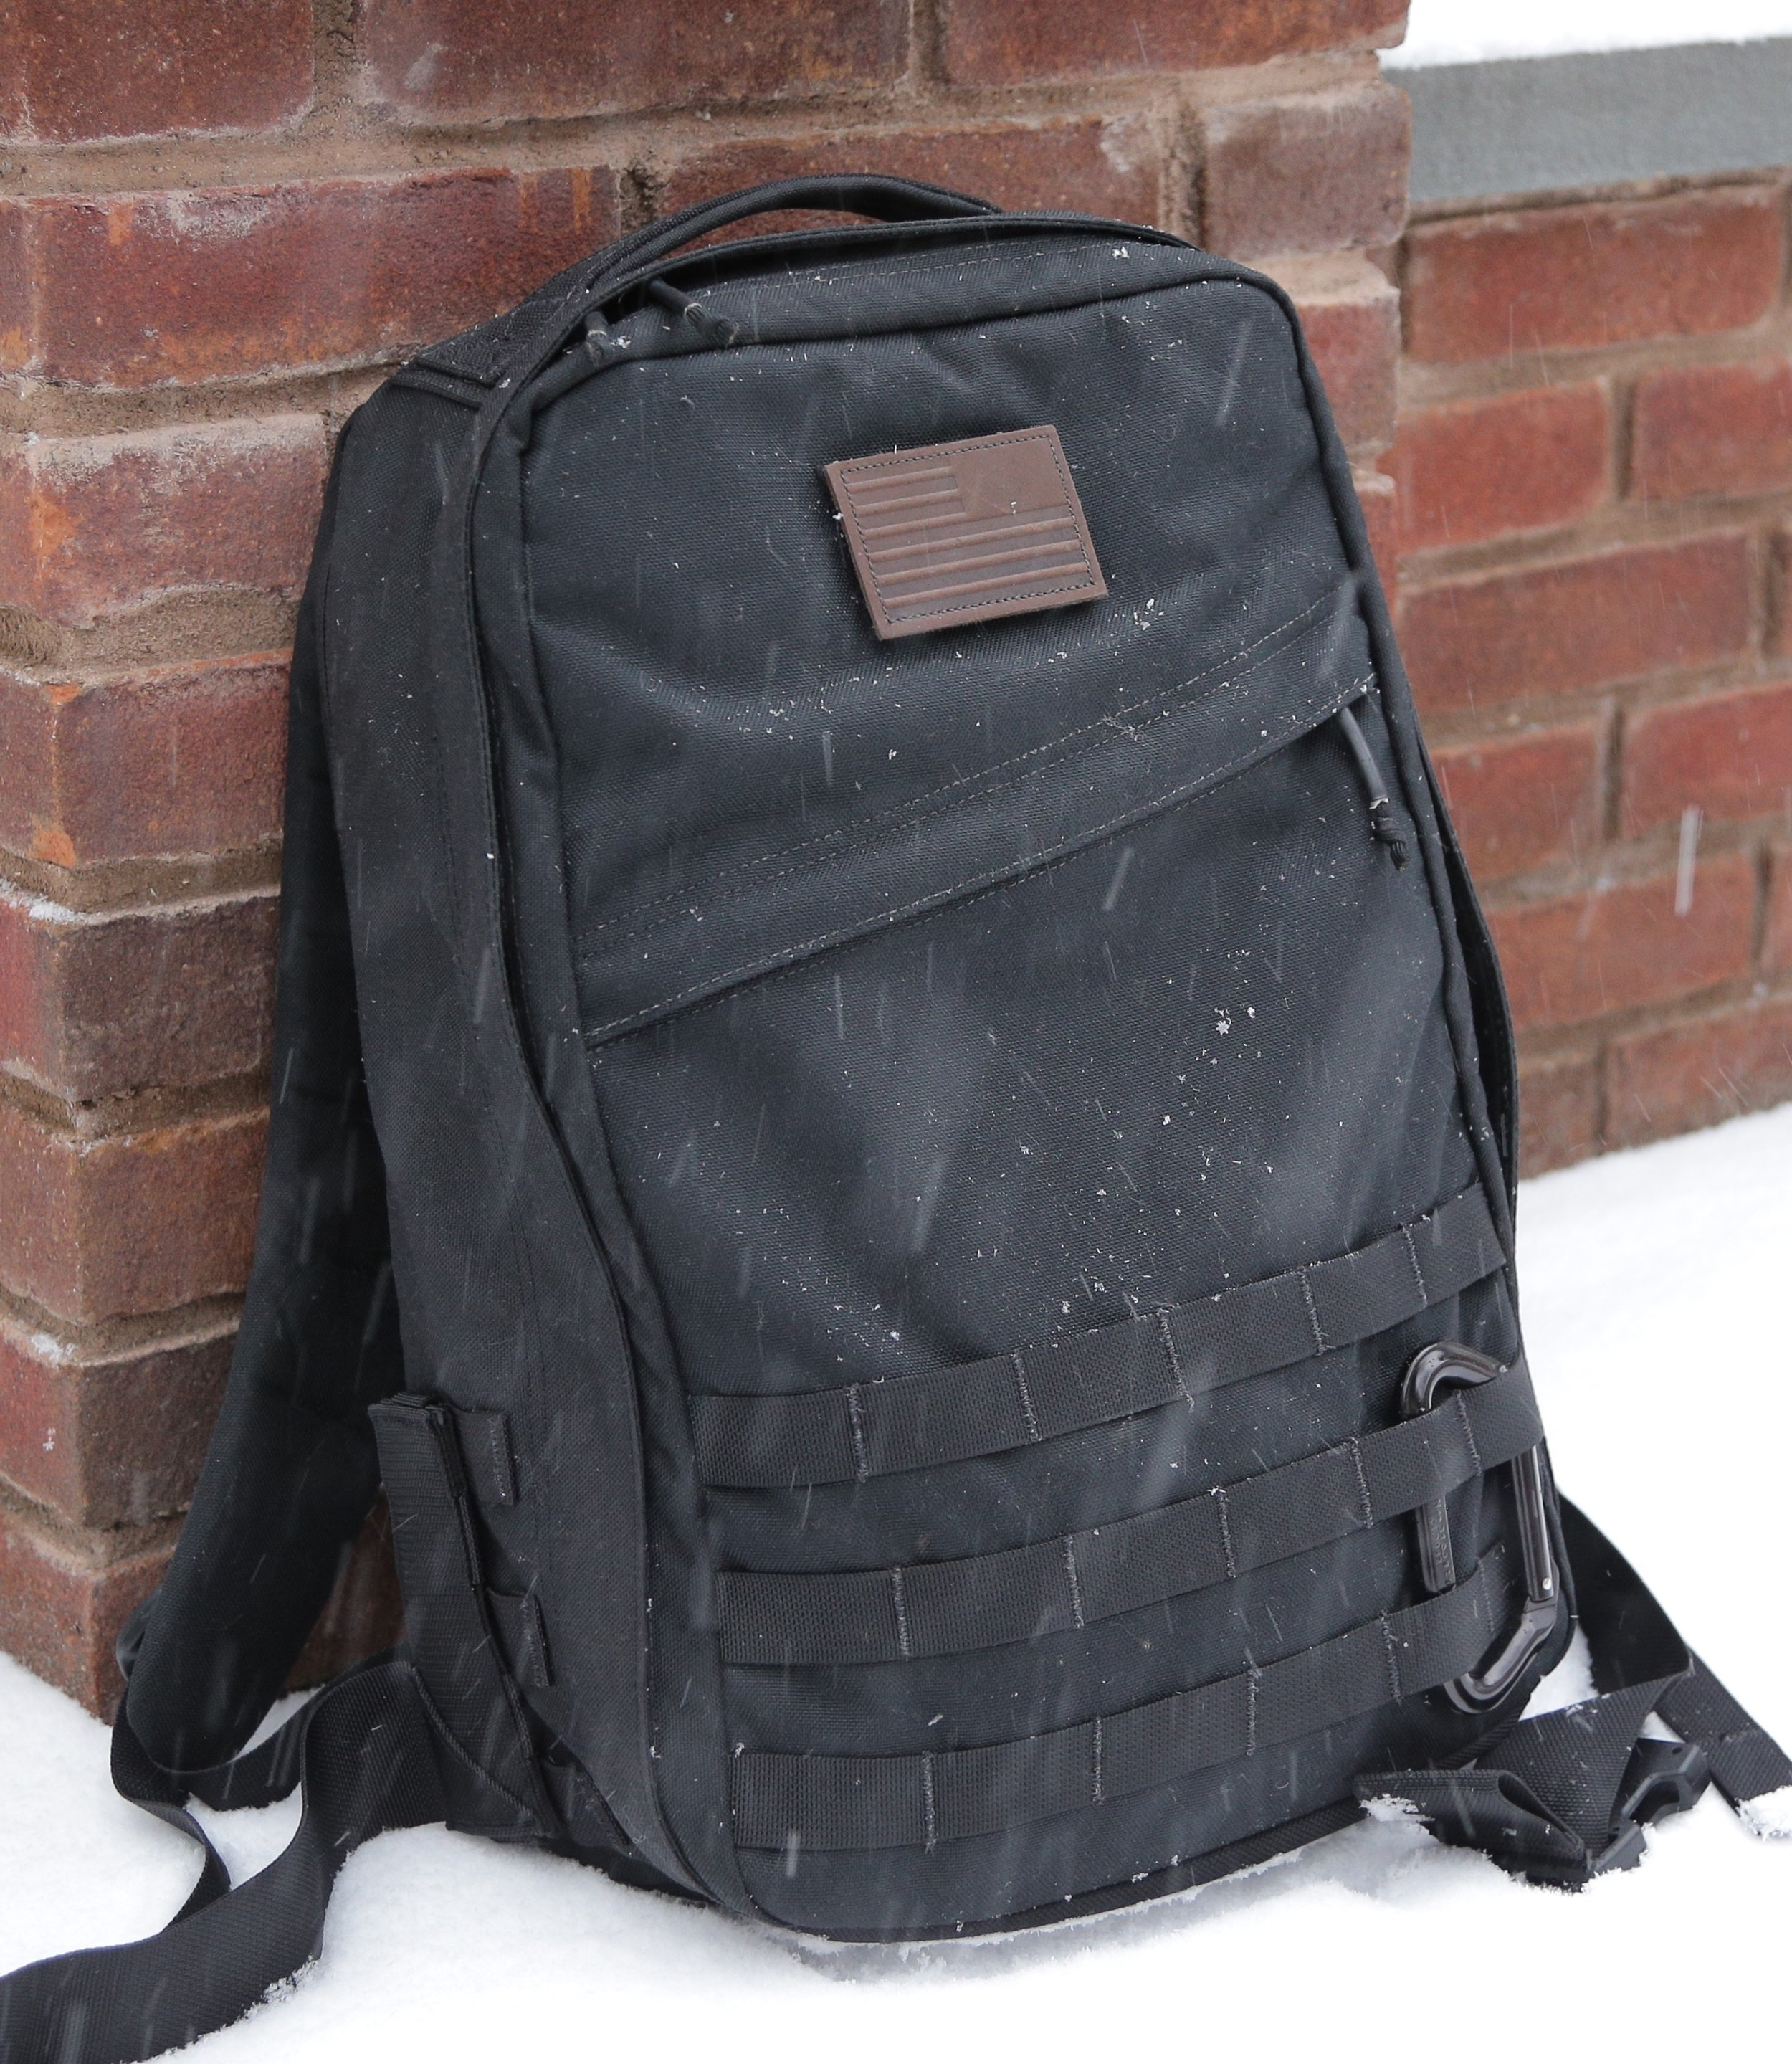 The GORUCK GR1 is a bombproof backpack built with military field use in mind, making it all but indestructible in your daily use.